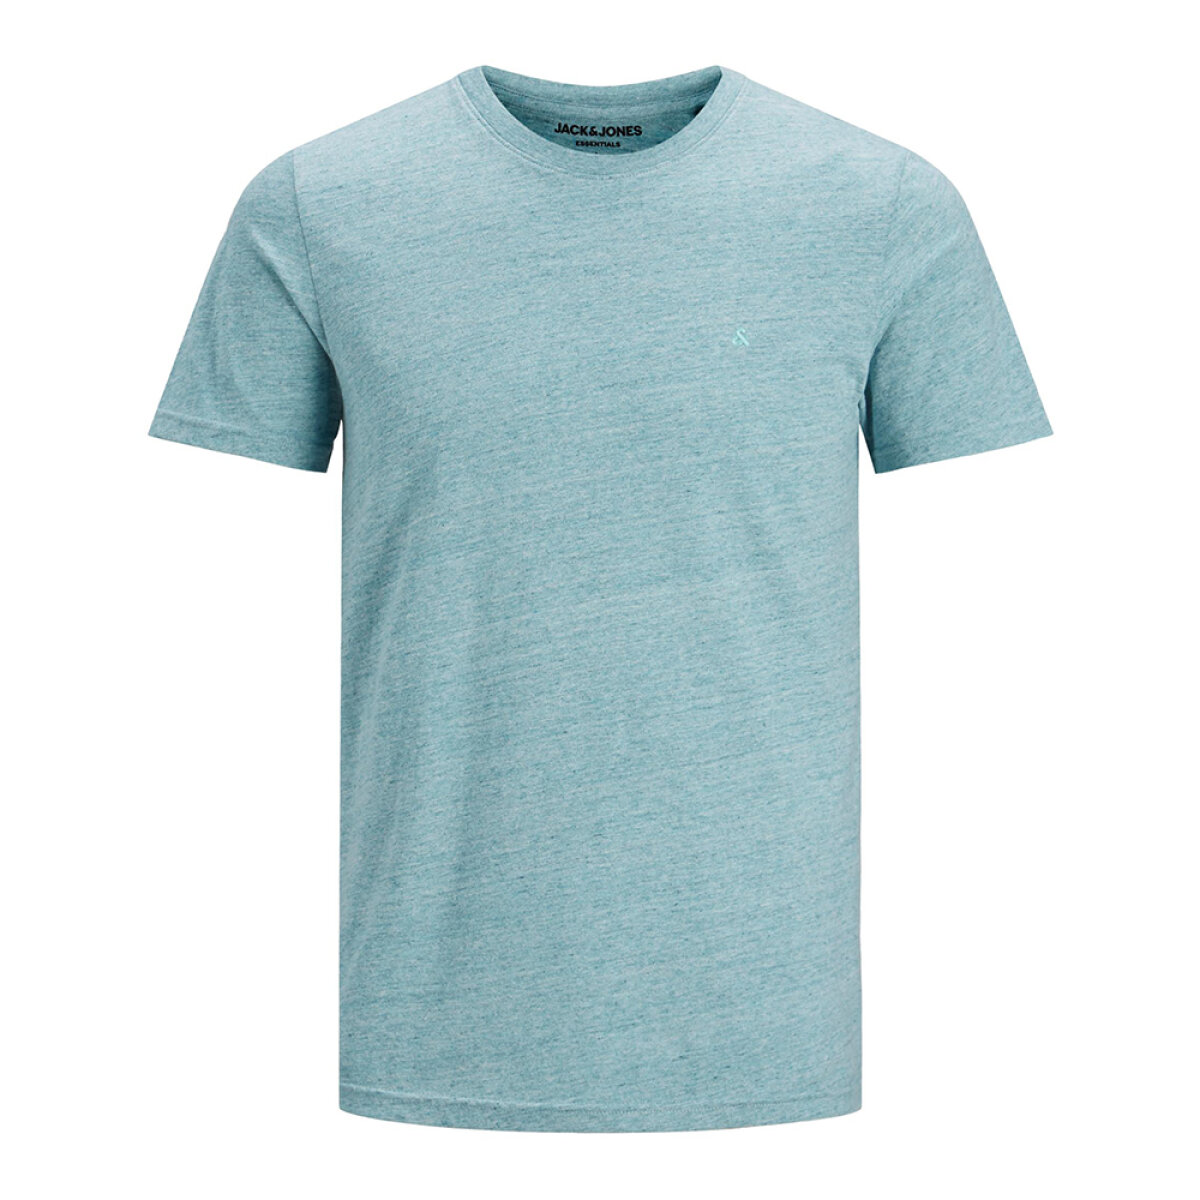 Jack & Jones Junior jongens shirt JJEMELANGE blauw